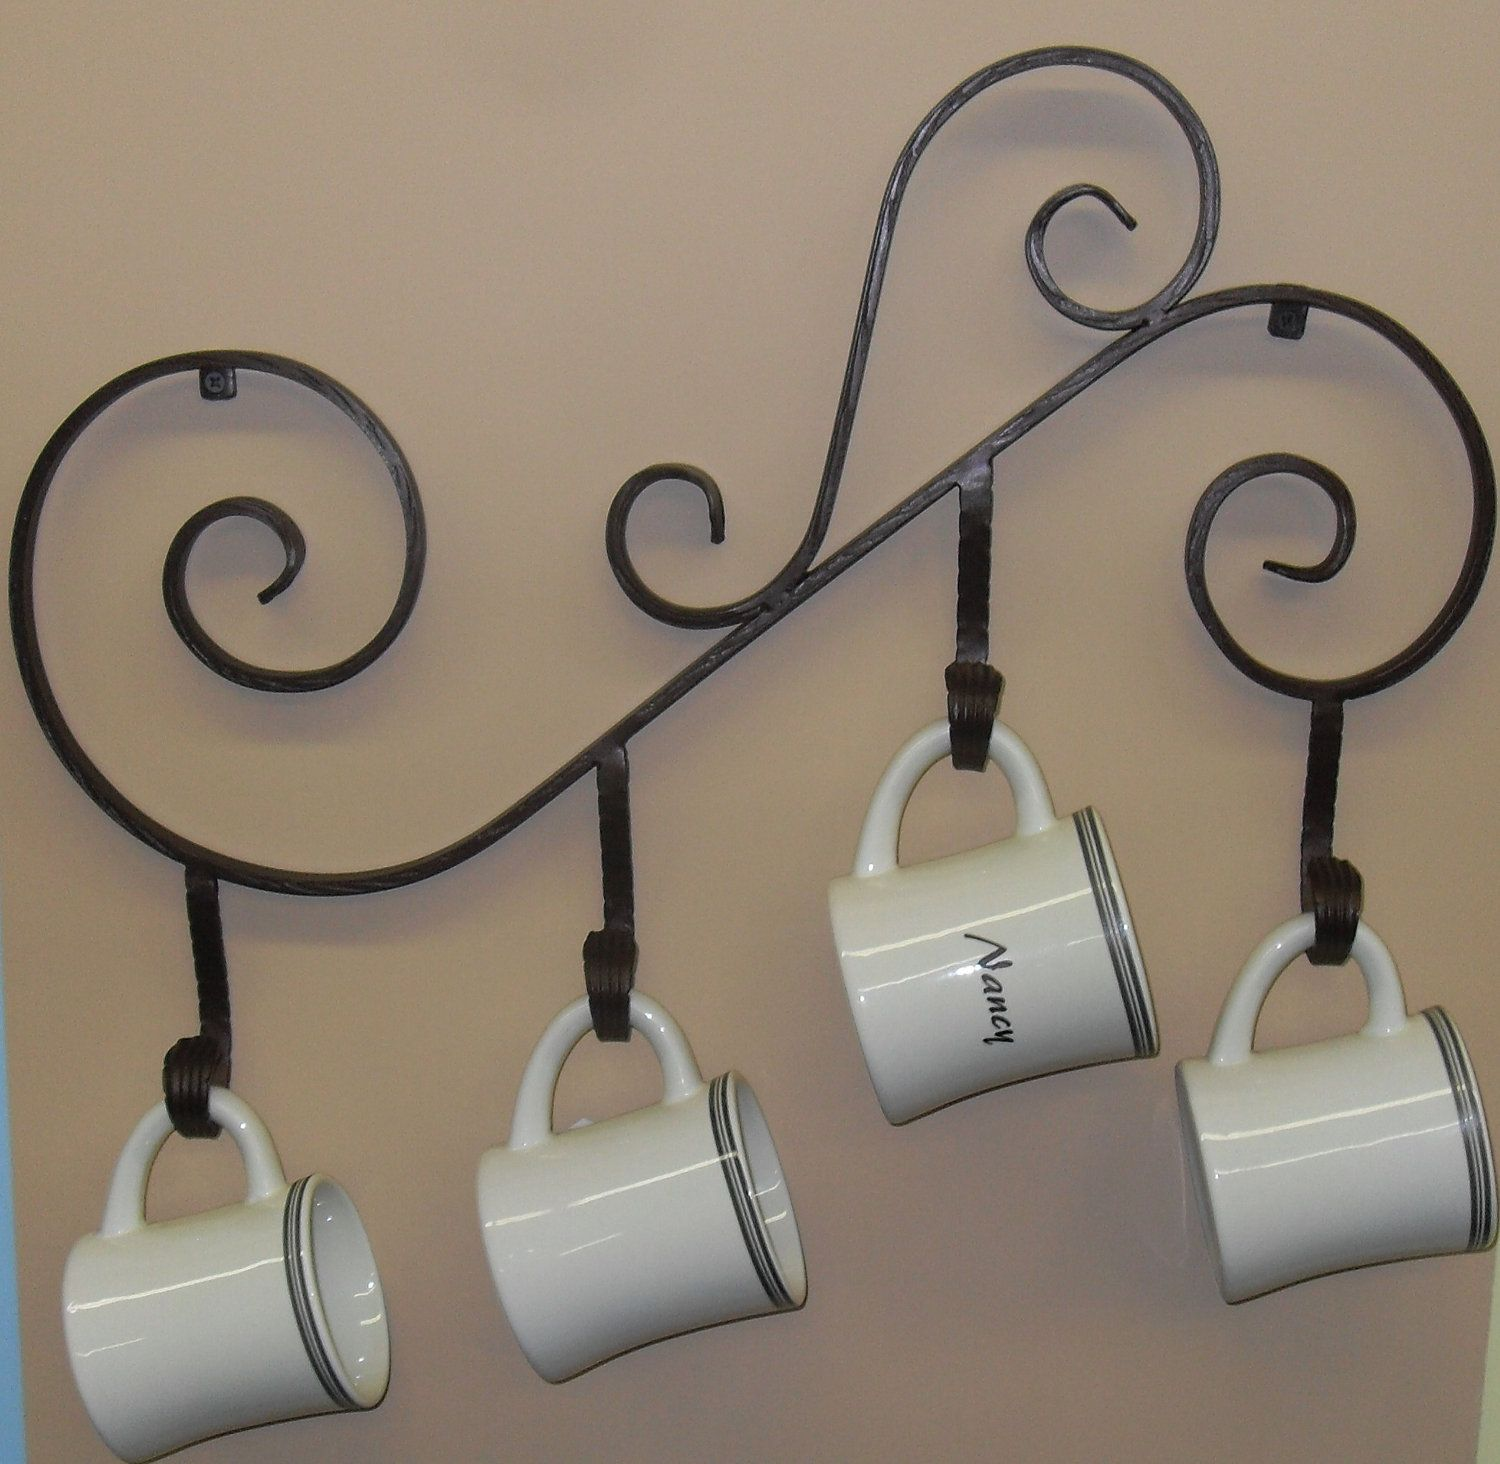 coffee mug holder wall mounted made out of wrought iron